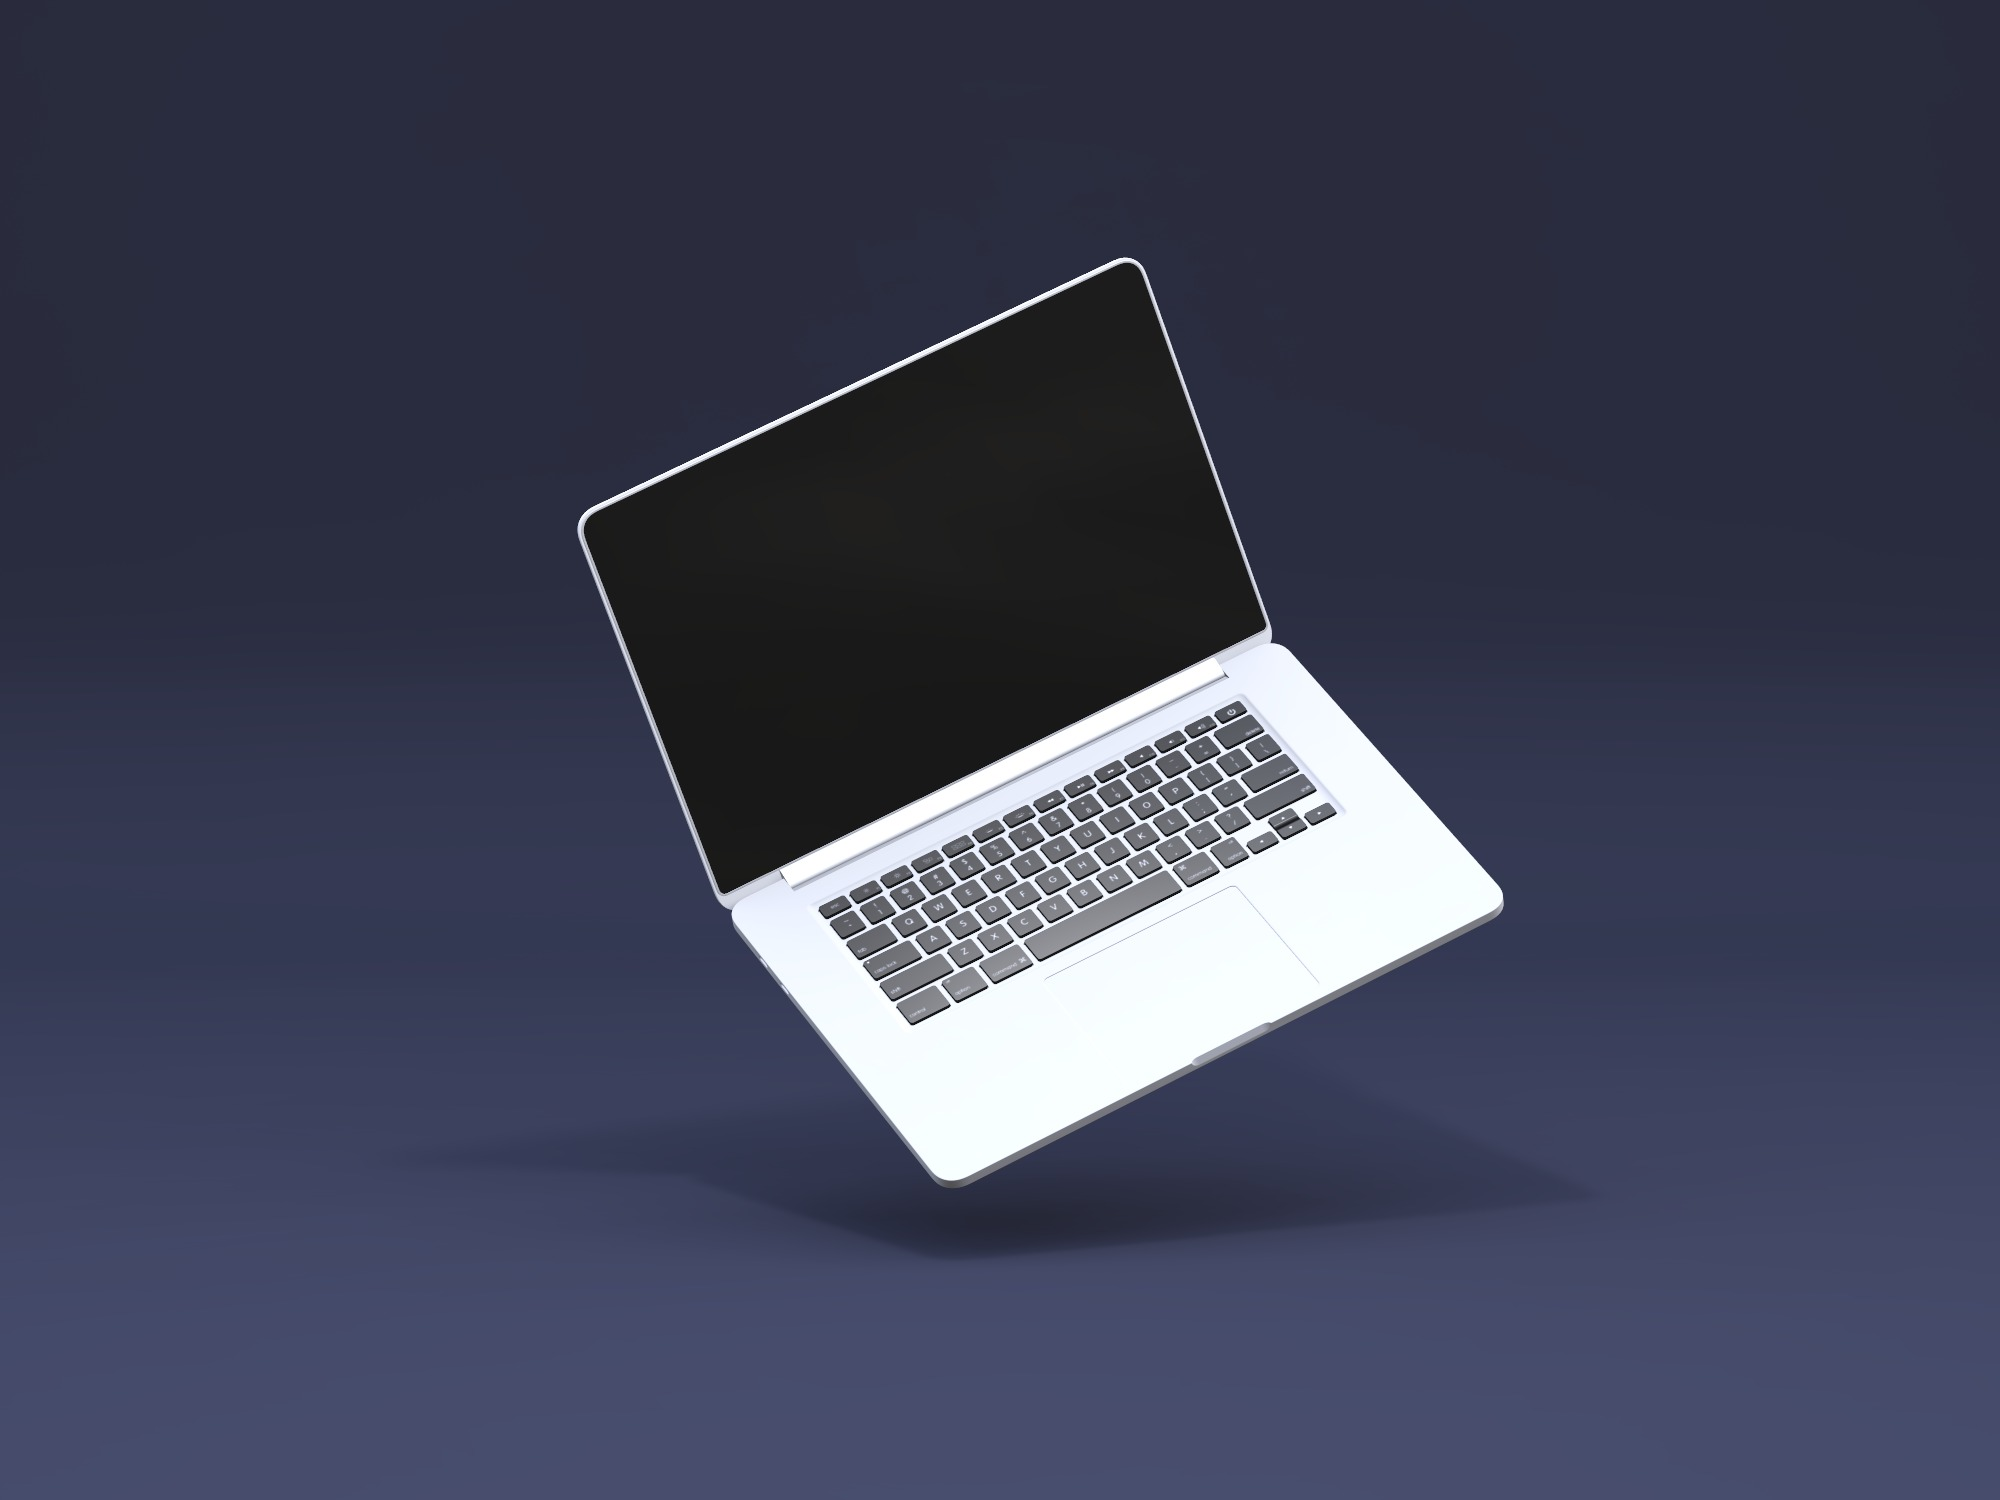 Macbook Pro floating mockup - replace image (copy) - 3D design by J Abigail Perez Gil Oct 22, 2018